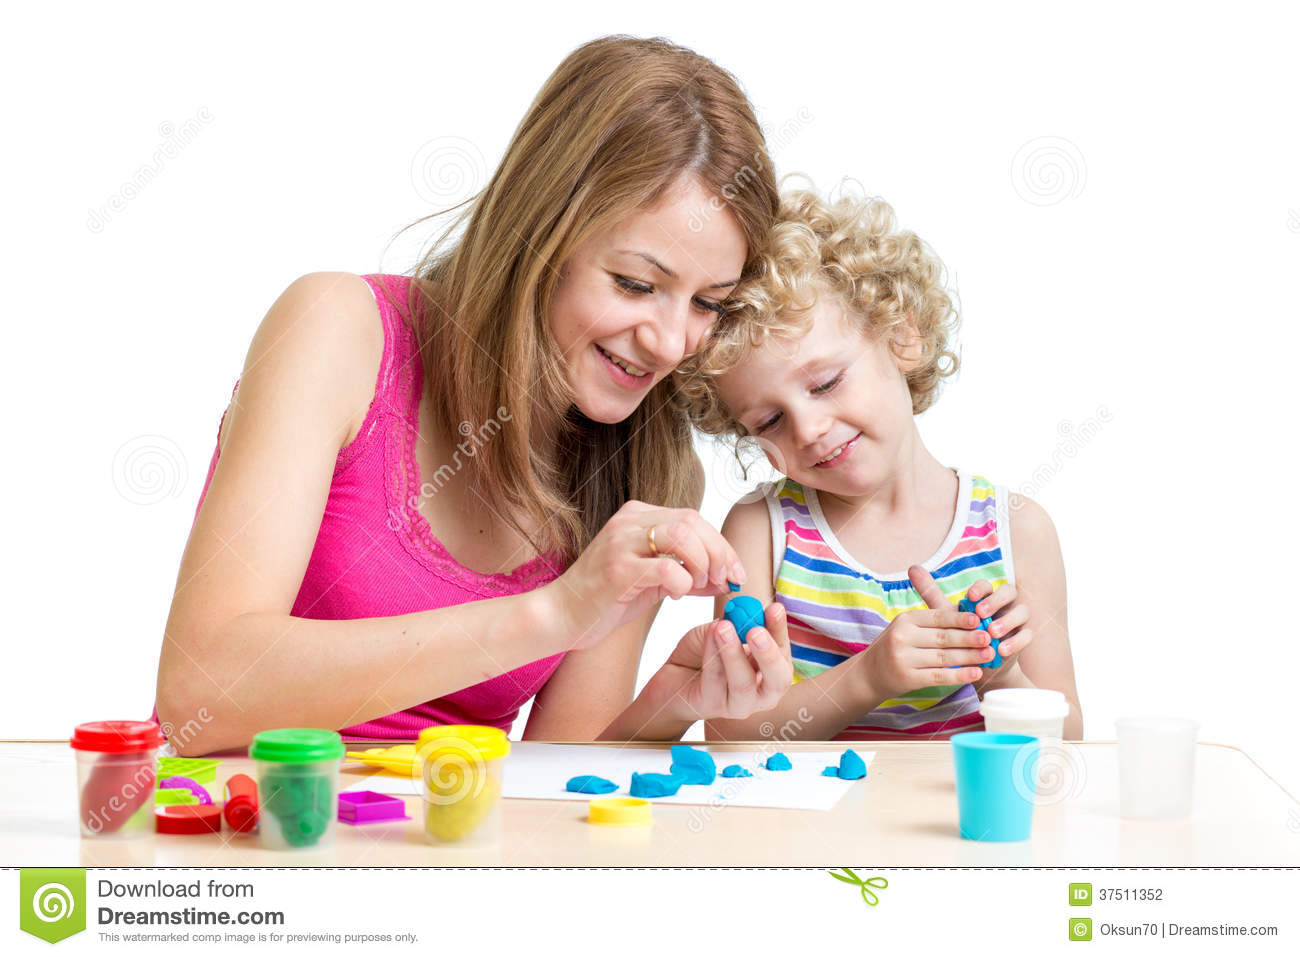 Mom Play Toys : Mom and kid play colorful clay toy stock photography